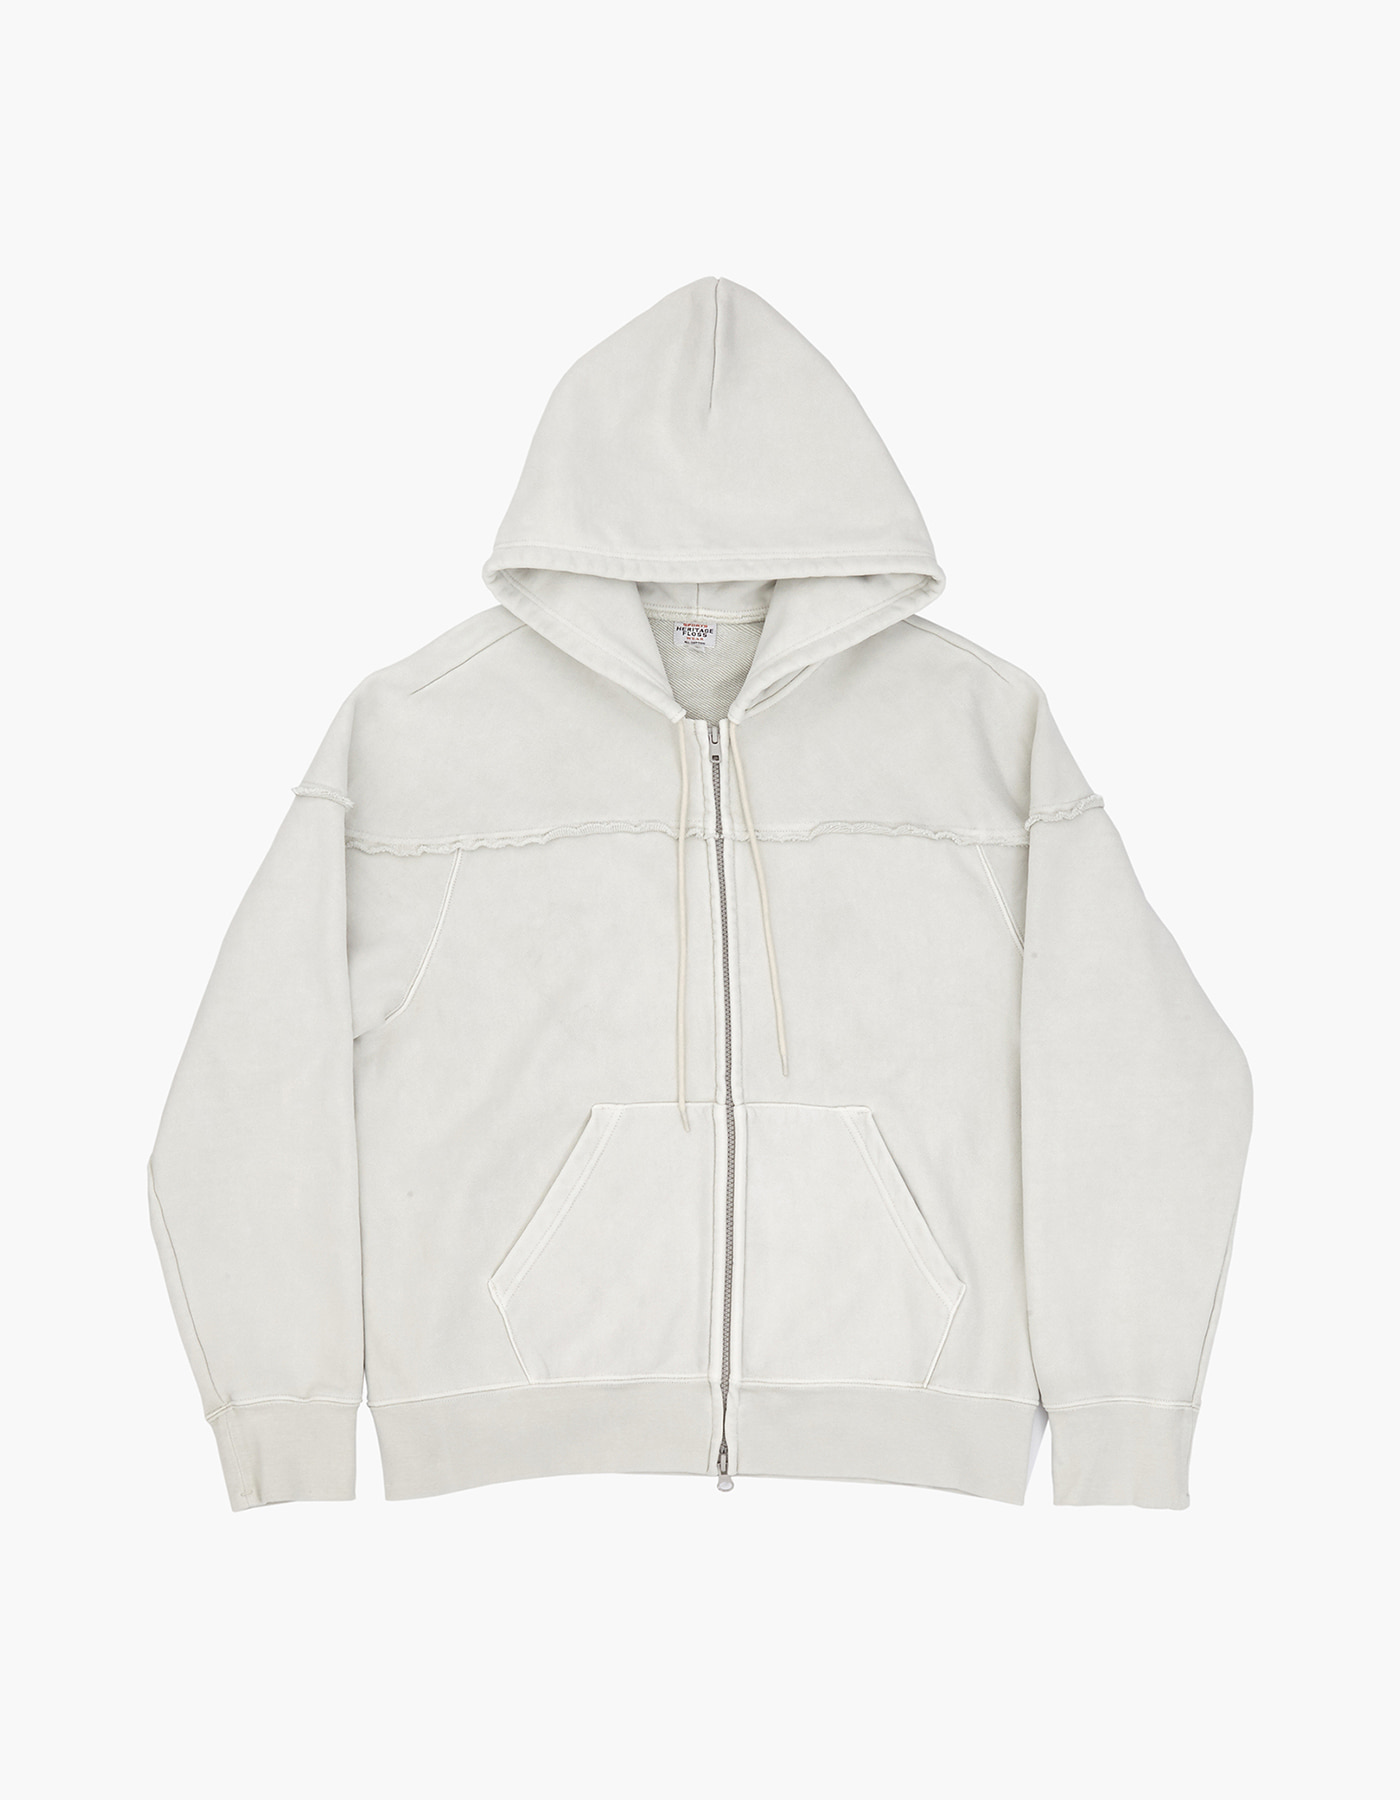 221 PIGMENT ZIP-UP / LIGHT GREY